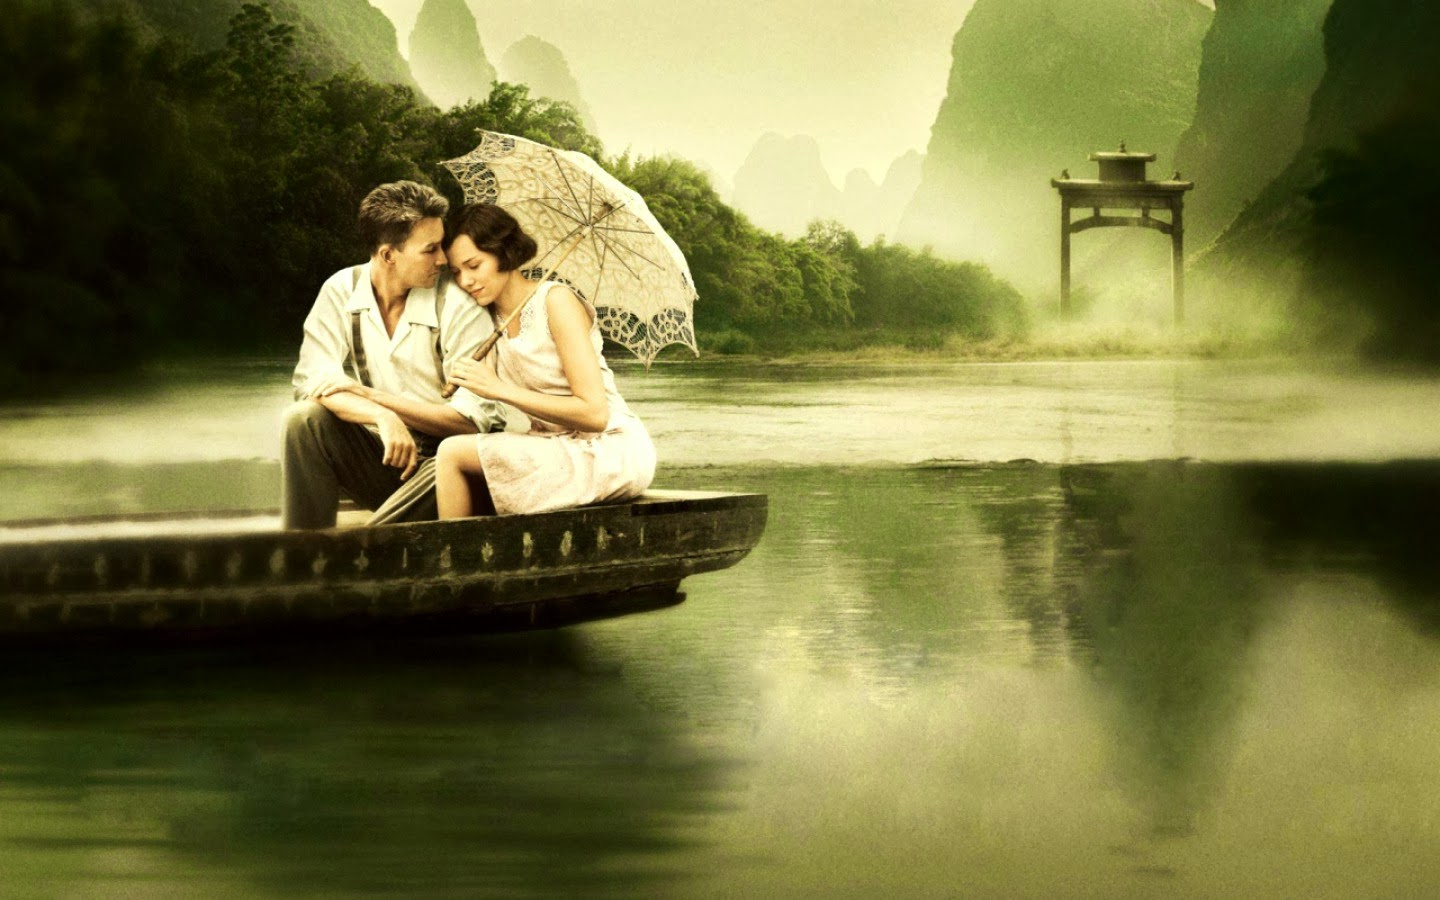 Wallpaper download couple love - Fb Love Couple Free Hd Wallappers